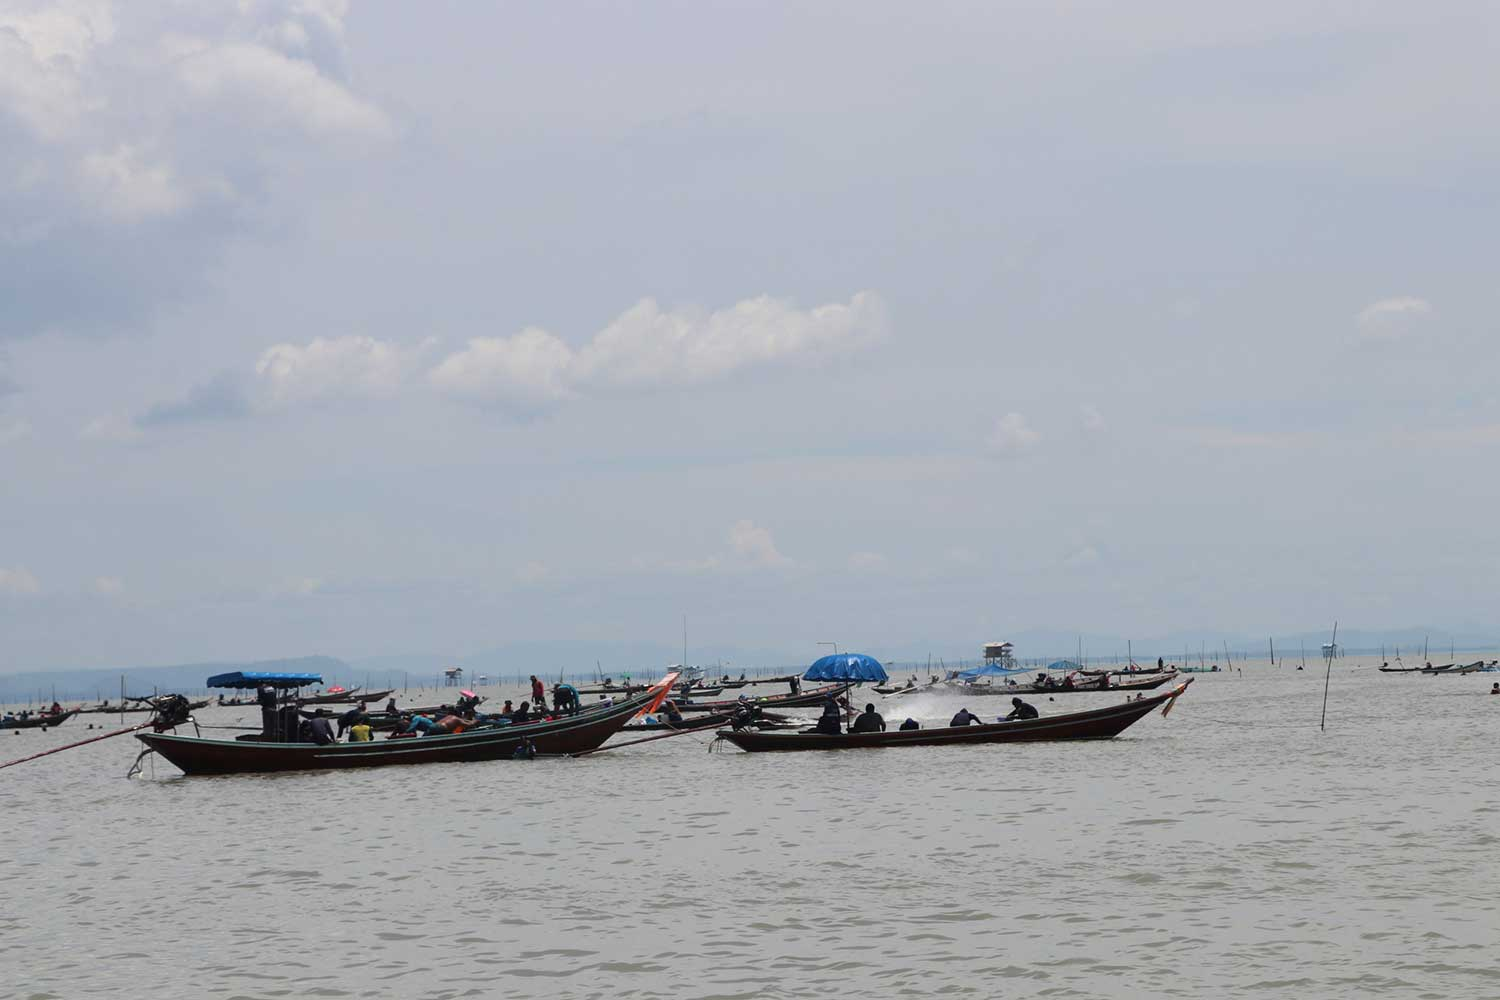 Cockle farmers on board more than 100 longtailed boats guard their compounds in the sea off the coast of Phunphin district in Surat Thani to prevent intrusion by small-scale fishermen on Saturday. (Photo: Supapong Chaolan)